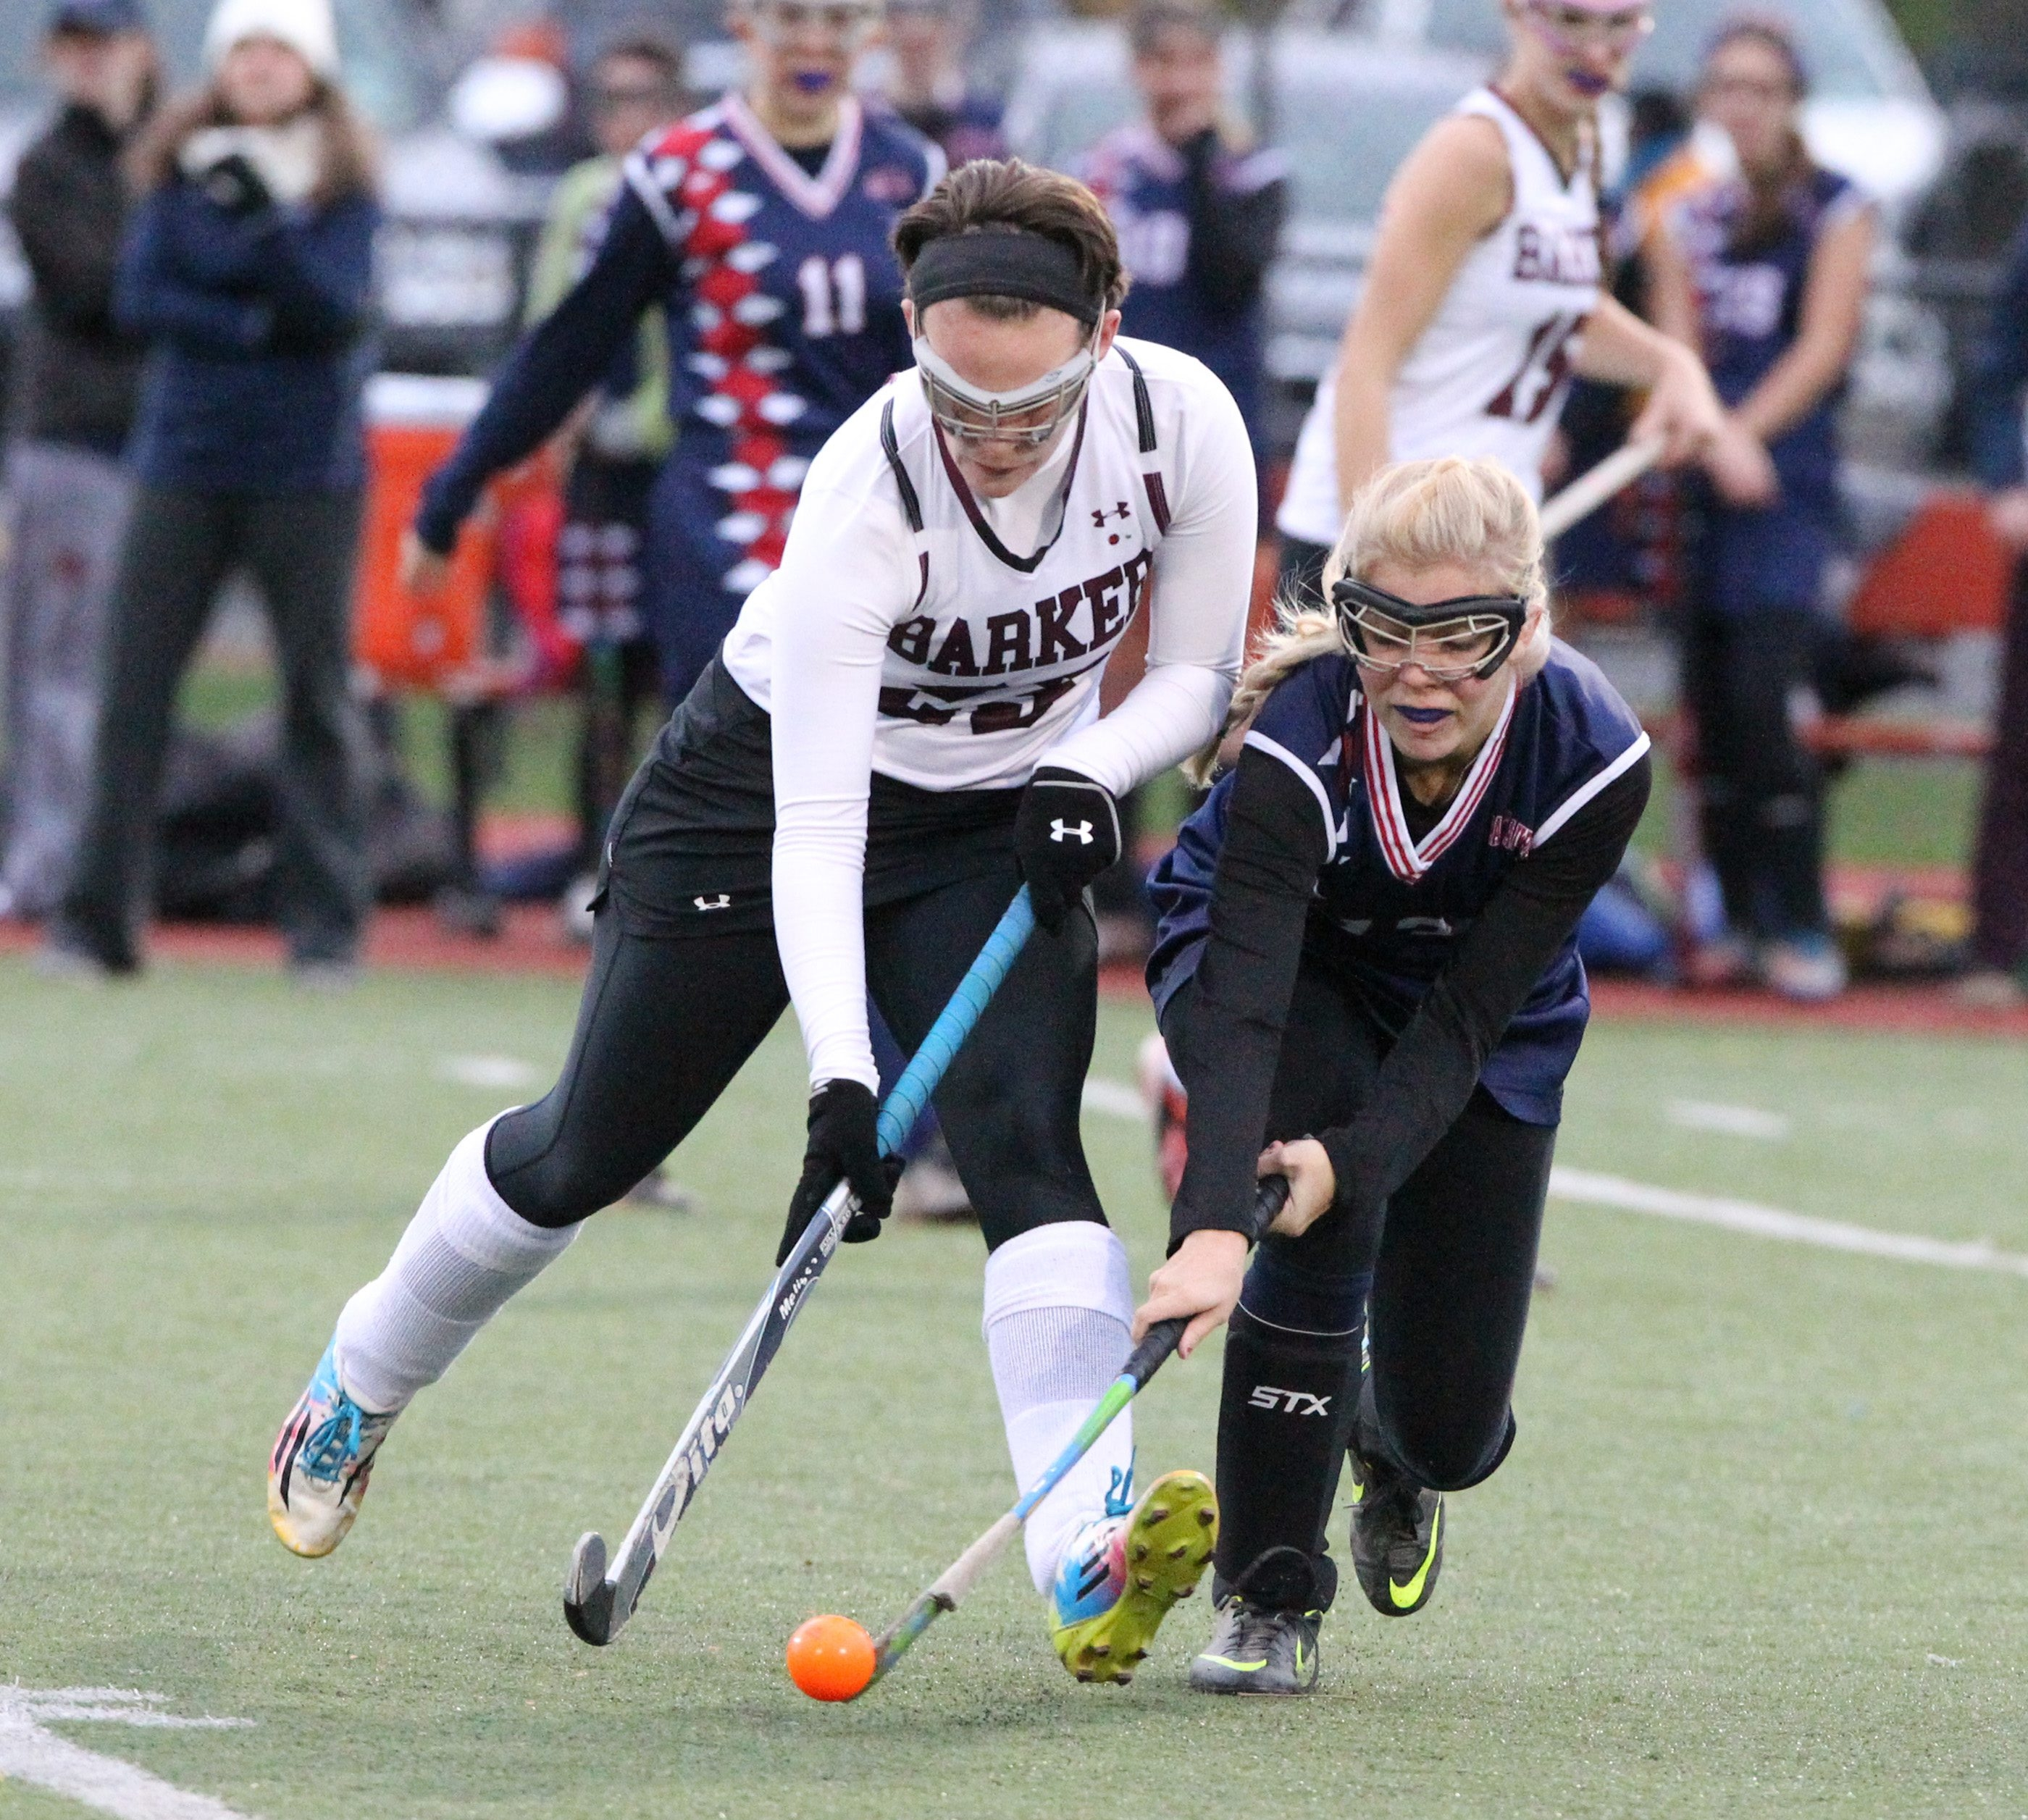 Barker's Melissa Grosshans and East Aurora's Dana Reger go after the ball during Thursday's Class C field hockey semifinal.